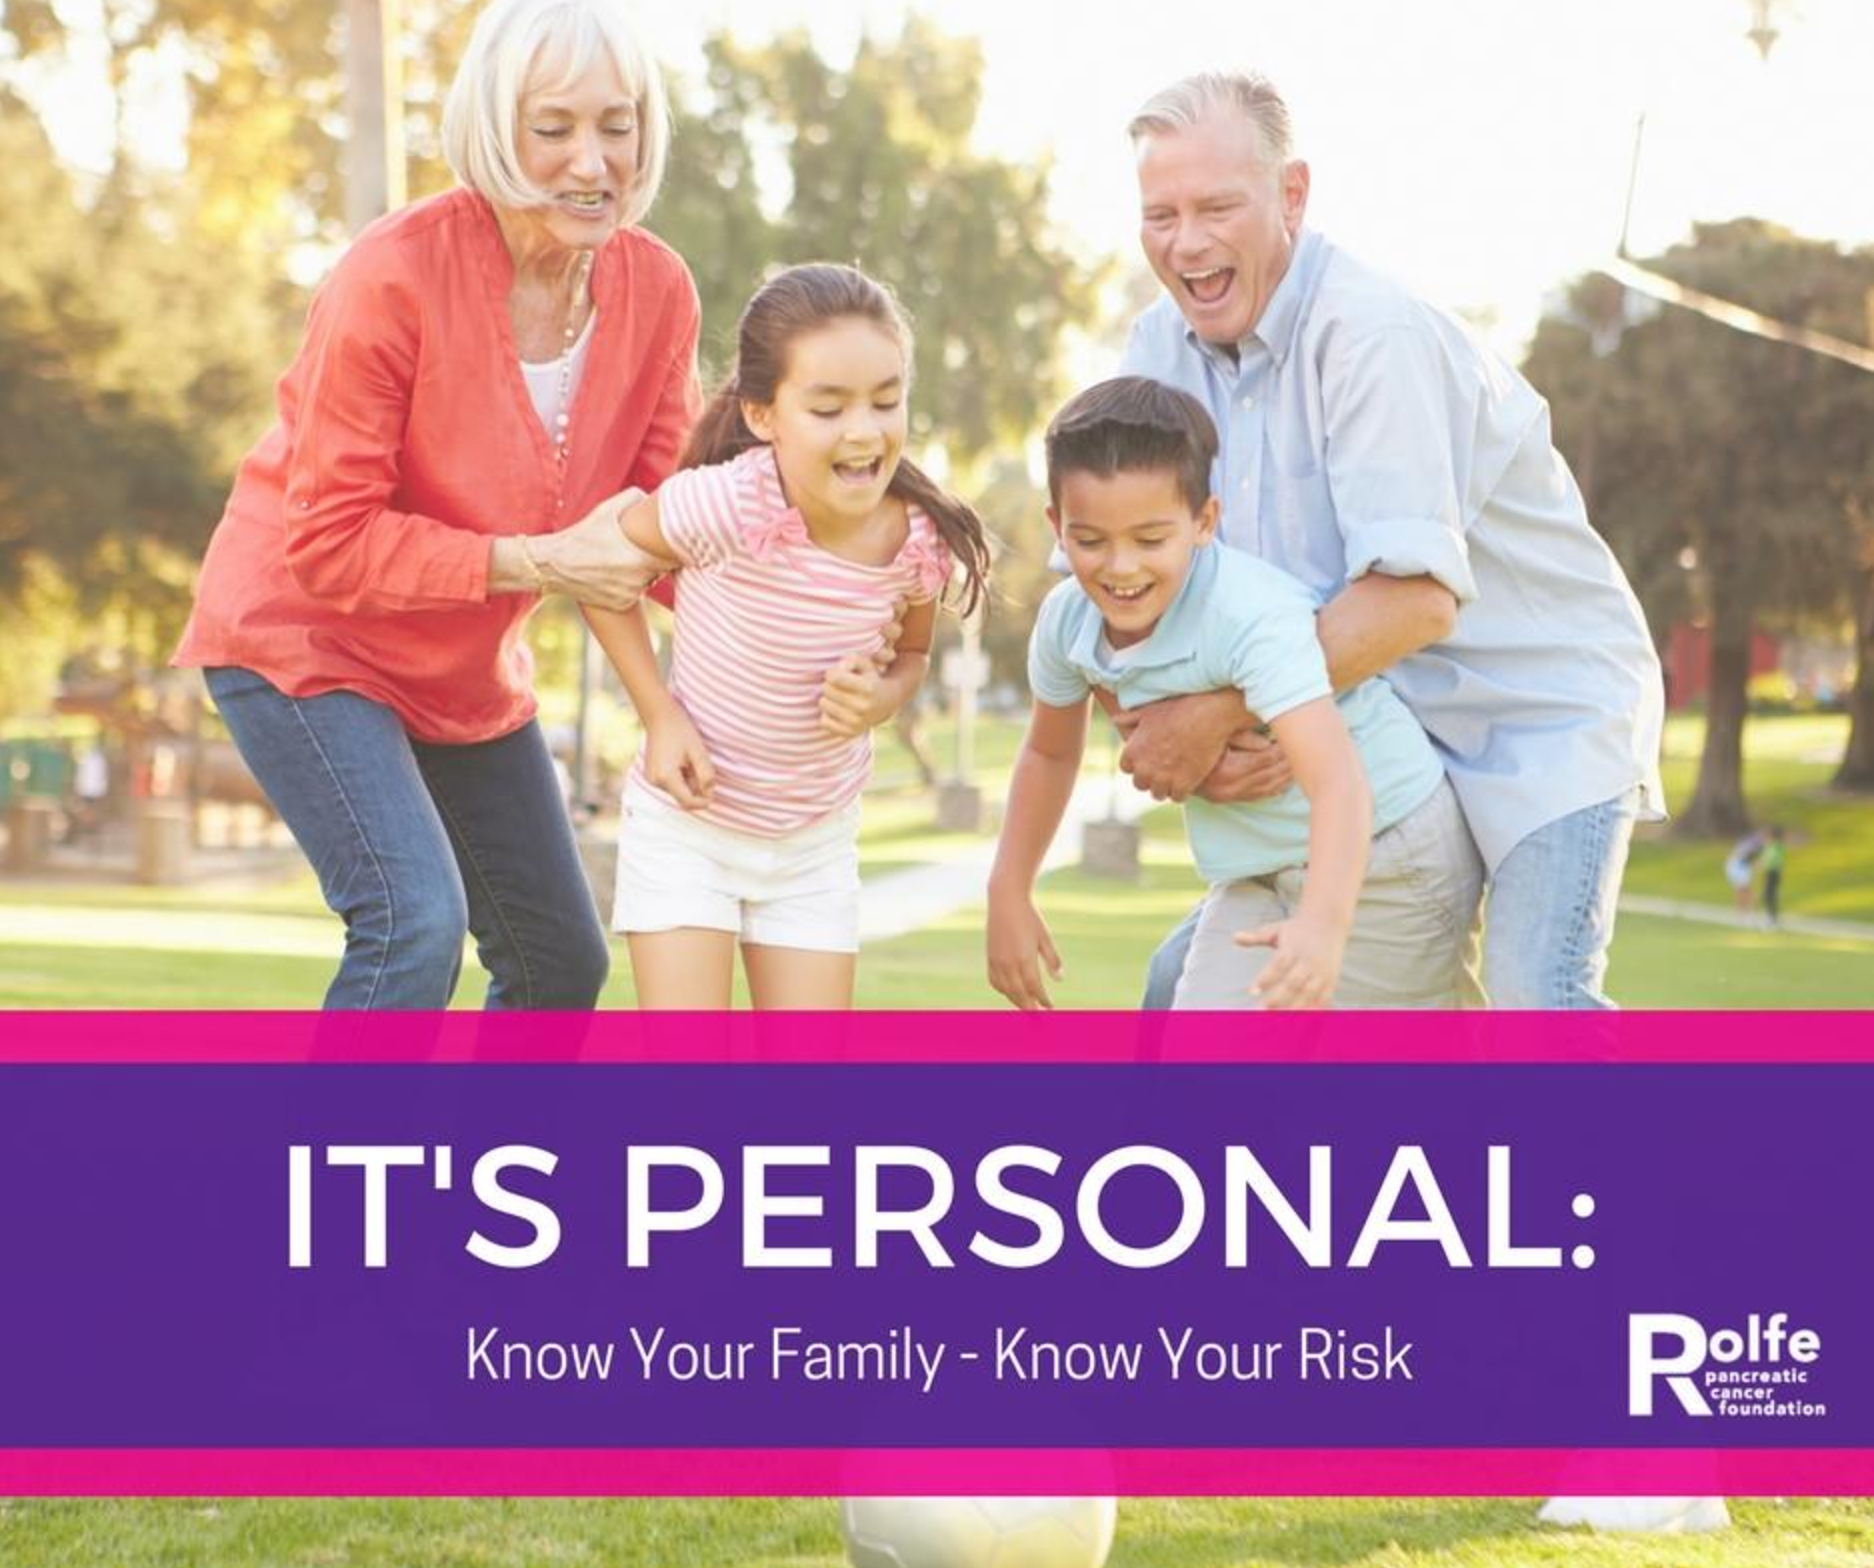 """The Rolfe Pancreatic Cancer Foundation has created the """"Know Your Family, Know Your Risk"""" campaign to help increase awareness and about pancreatic cancer, to discuss preventative measures and the importance of early detection."""